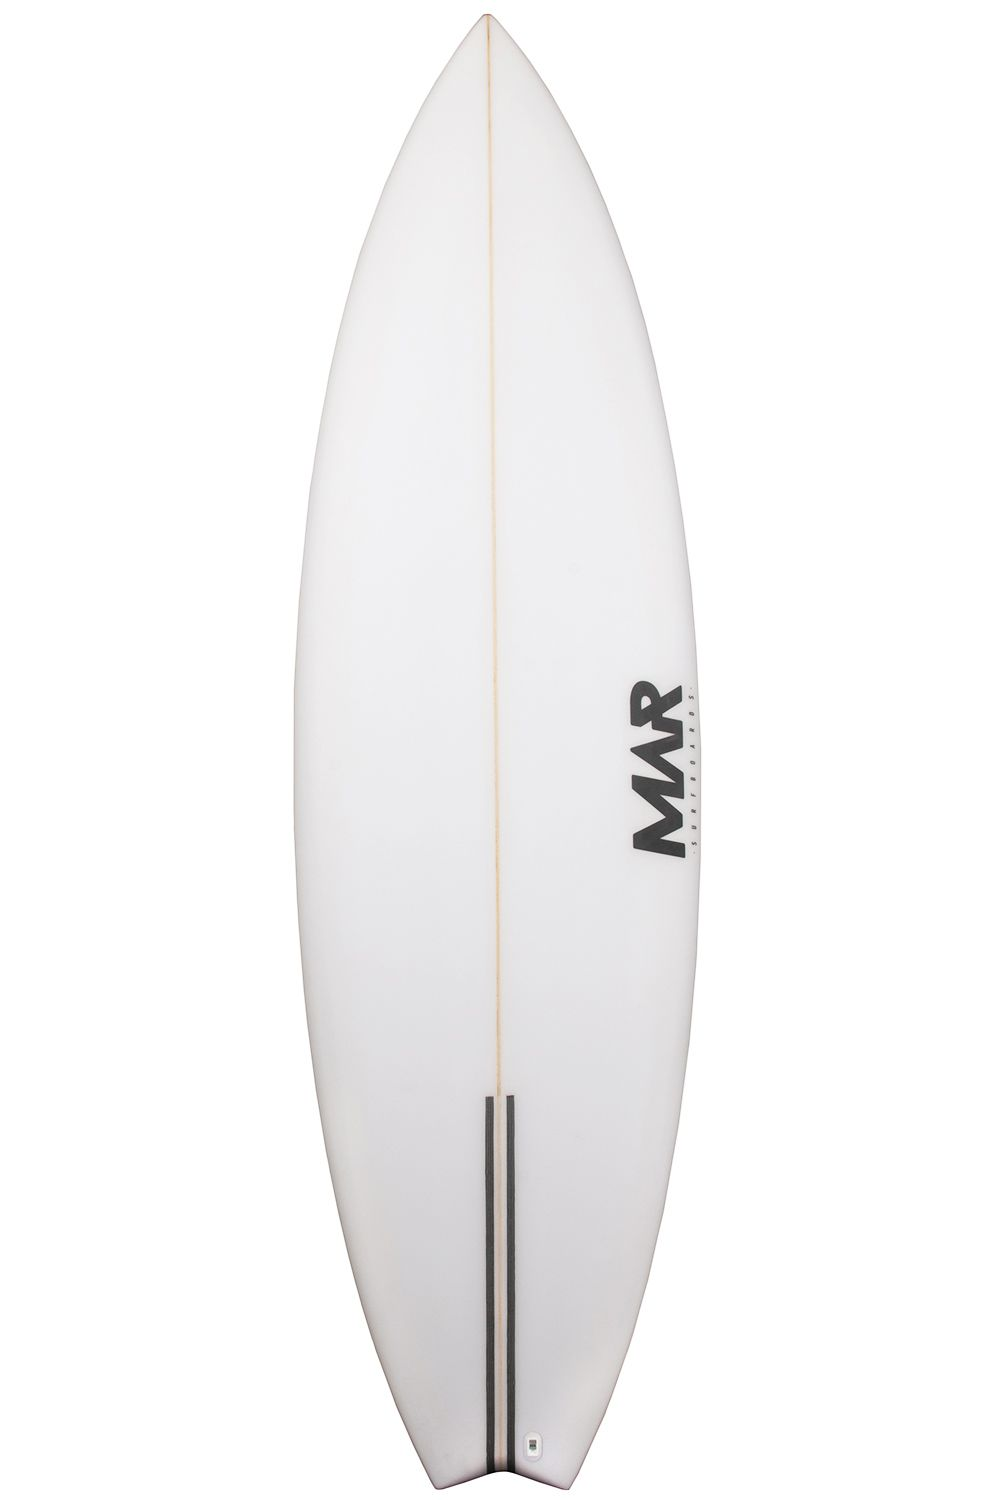 Mar Surf Board 6'2 PARROT PU Swallow Tail - White FCS II 6ft2